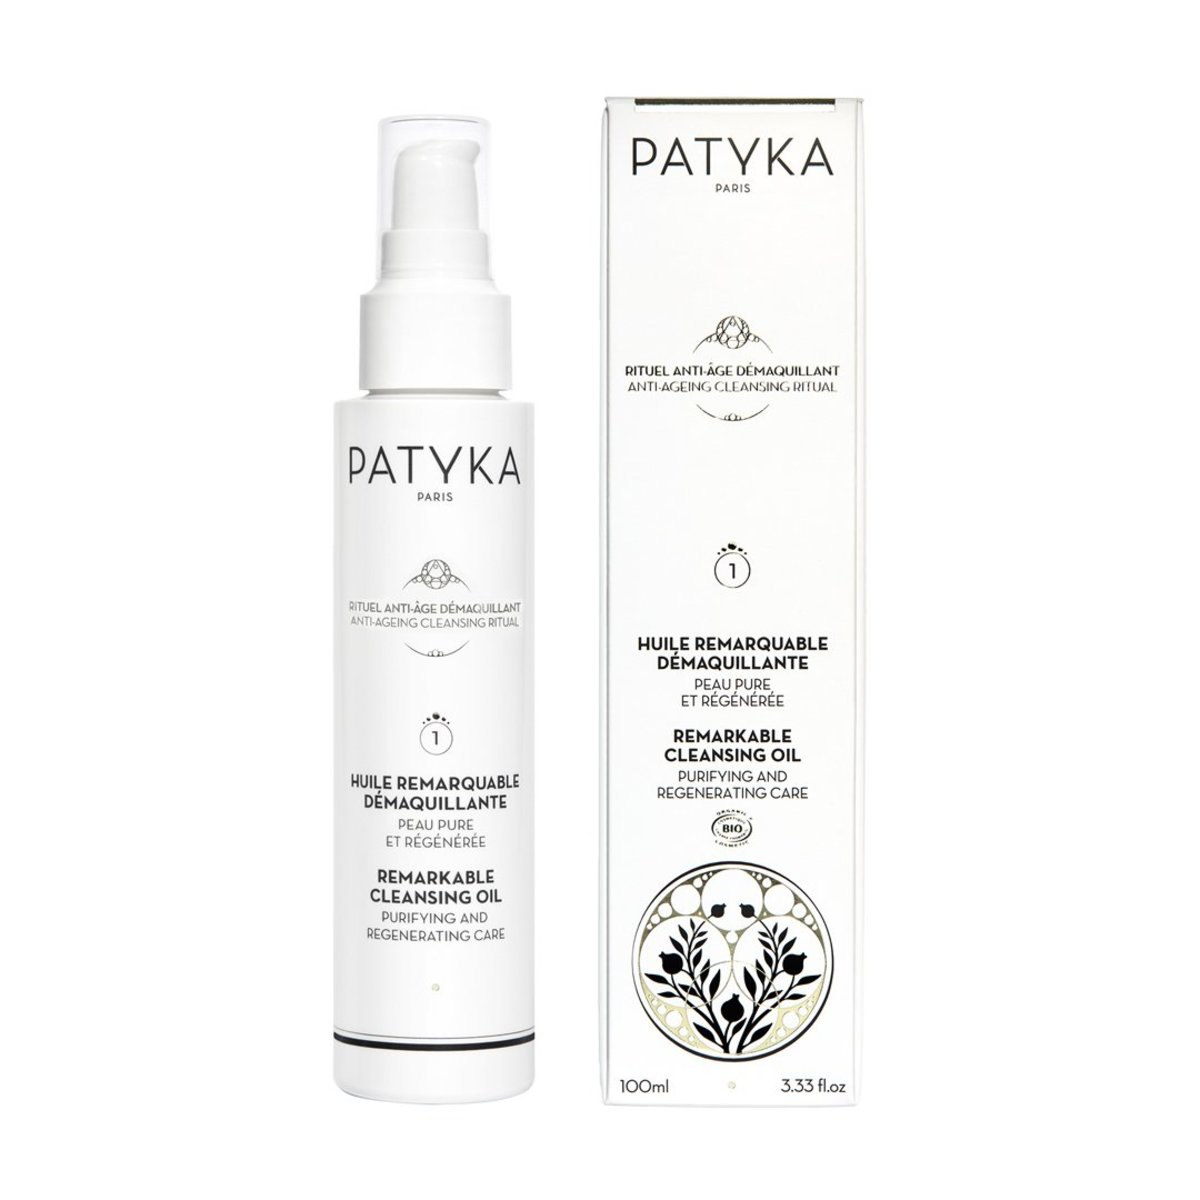 patyka_remarkable_cleansing_oil_at_credo_beauty_ea4feea3-602f-429e-977a-ecf612023e08_2000x